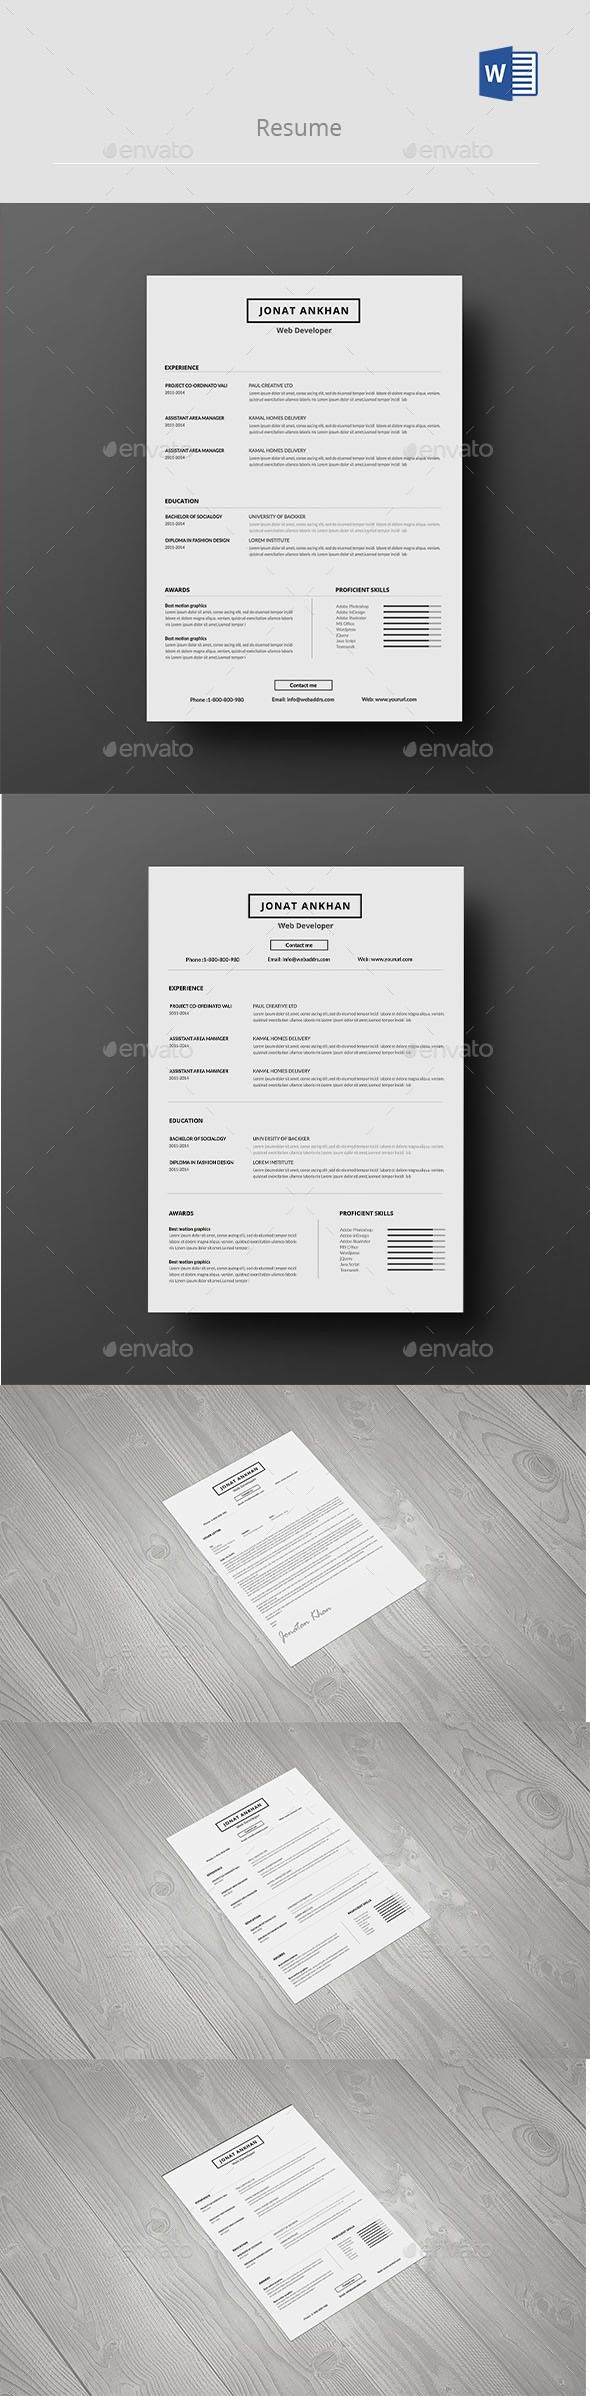 Resume Photoshop Psd Stylish Resume Template